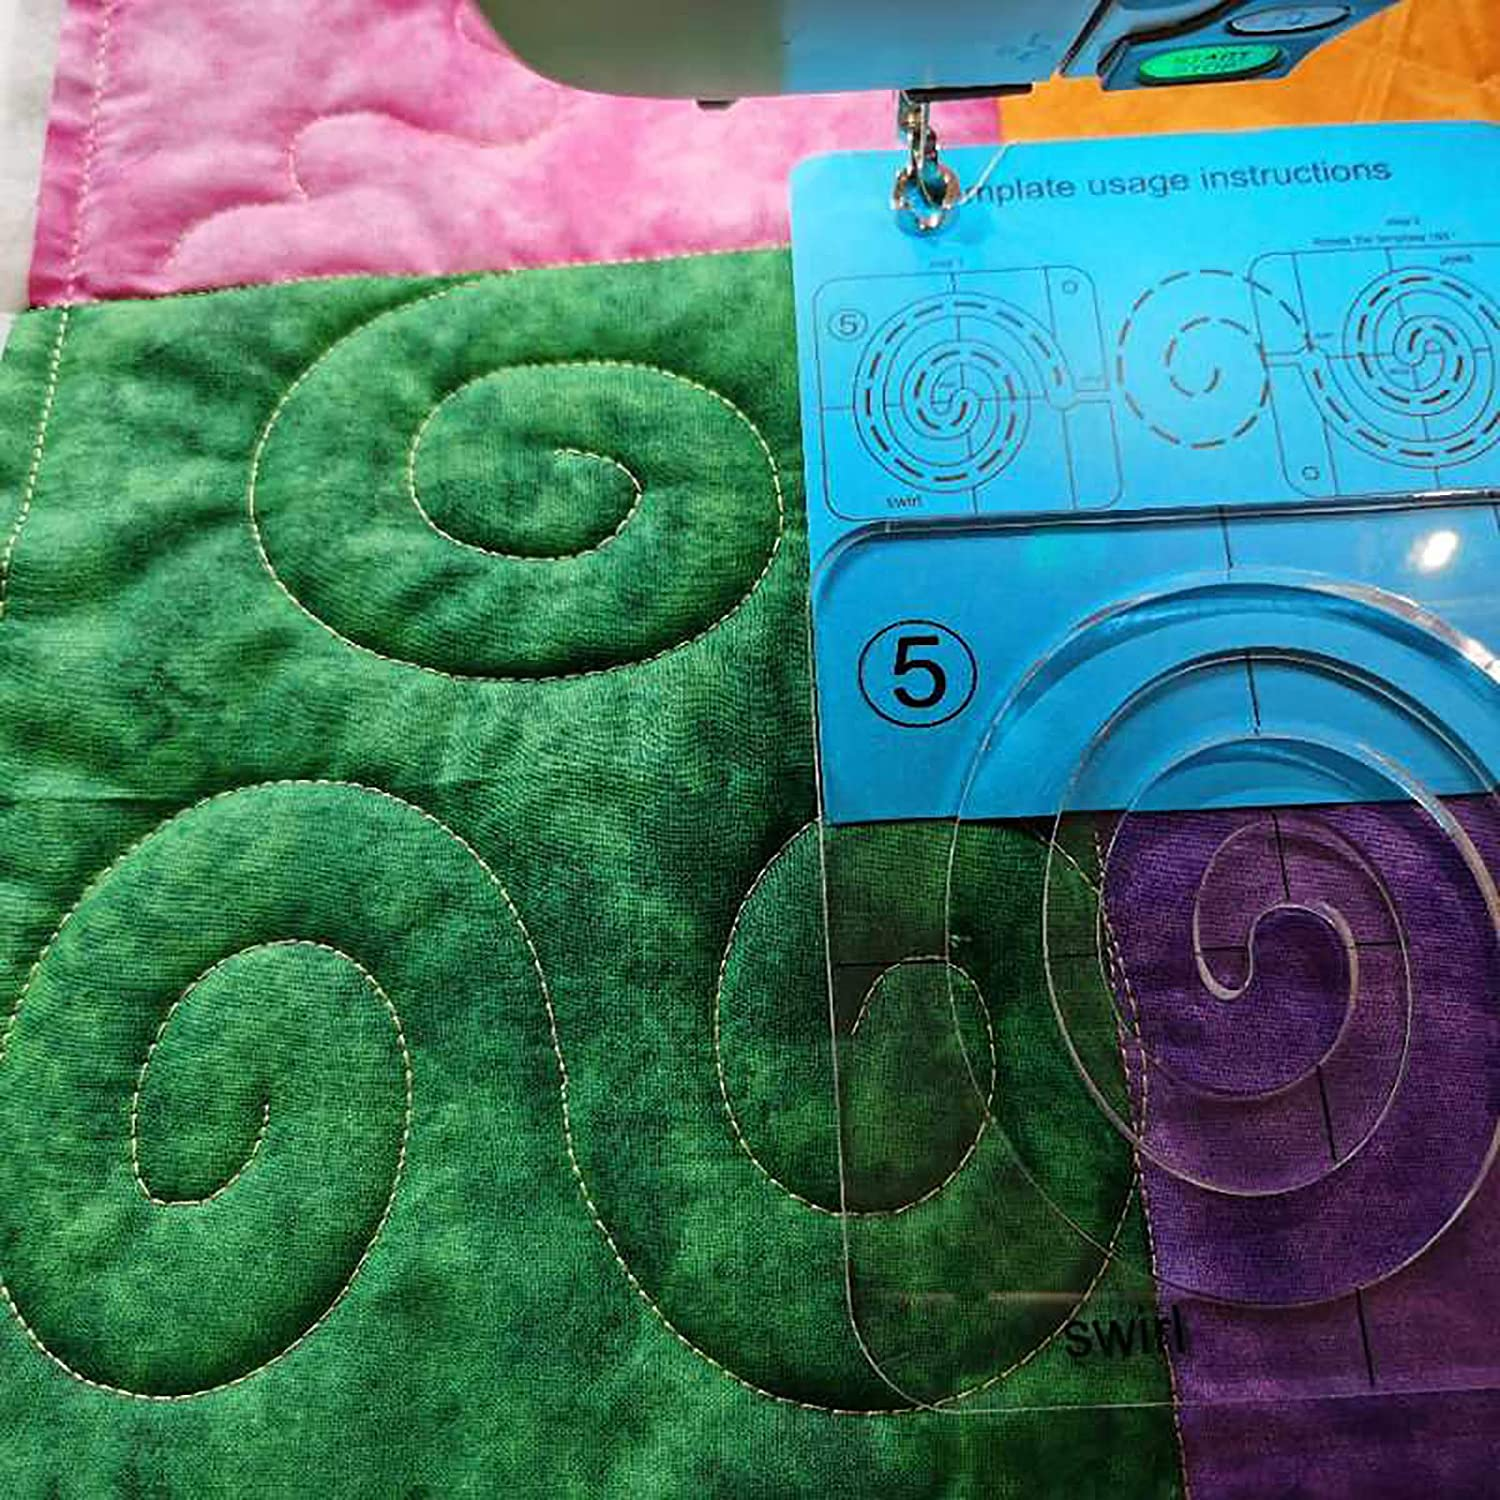 YICBOR Swirl Template for Quilting Fits Inside FMQ Grip 5